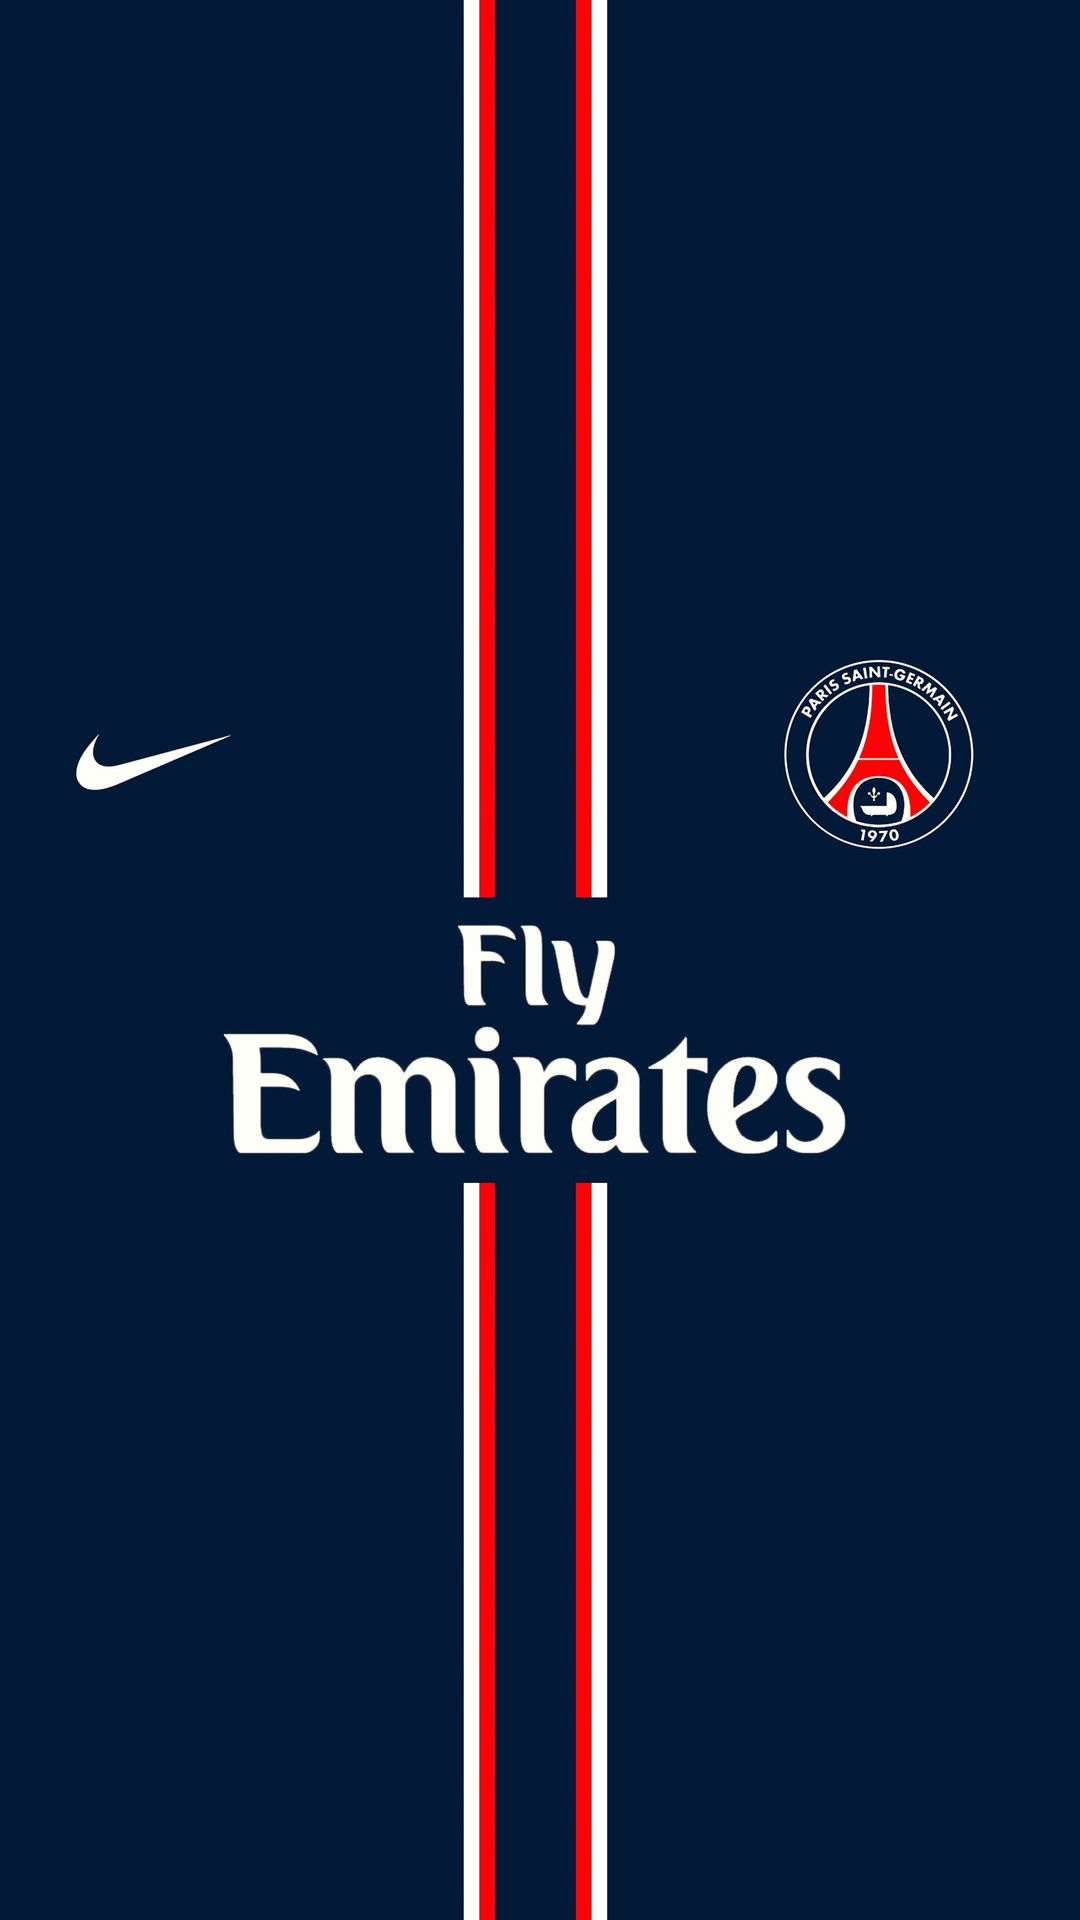 Nike soccer wallpaper backgrounds